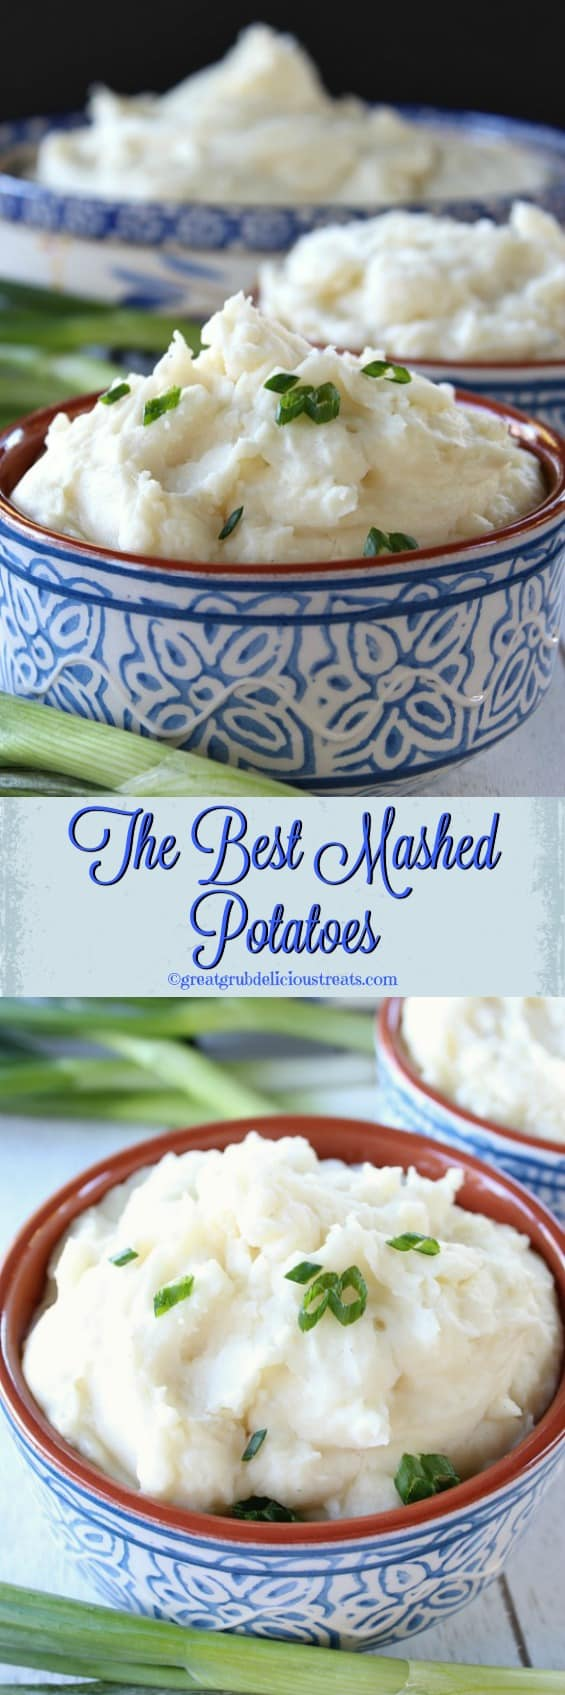 The Best Mashed Potatoes Great Grub Delicious Treats